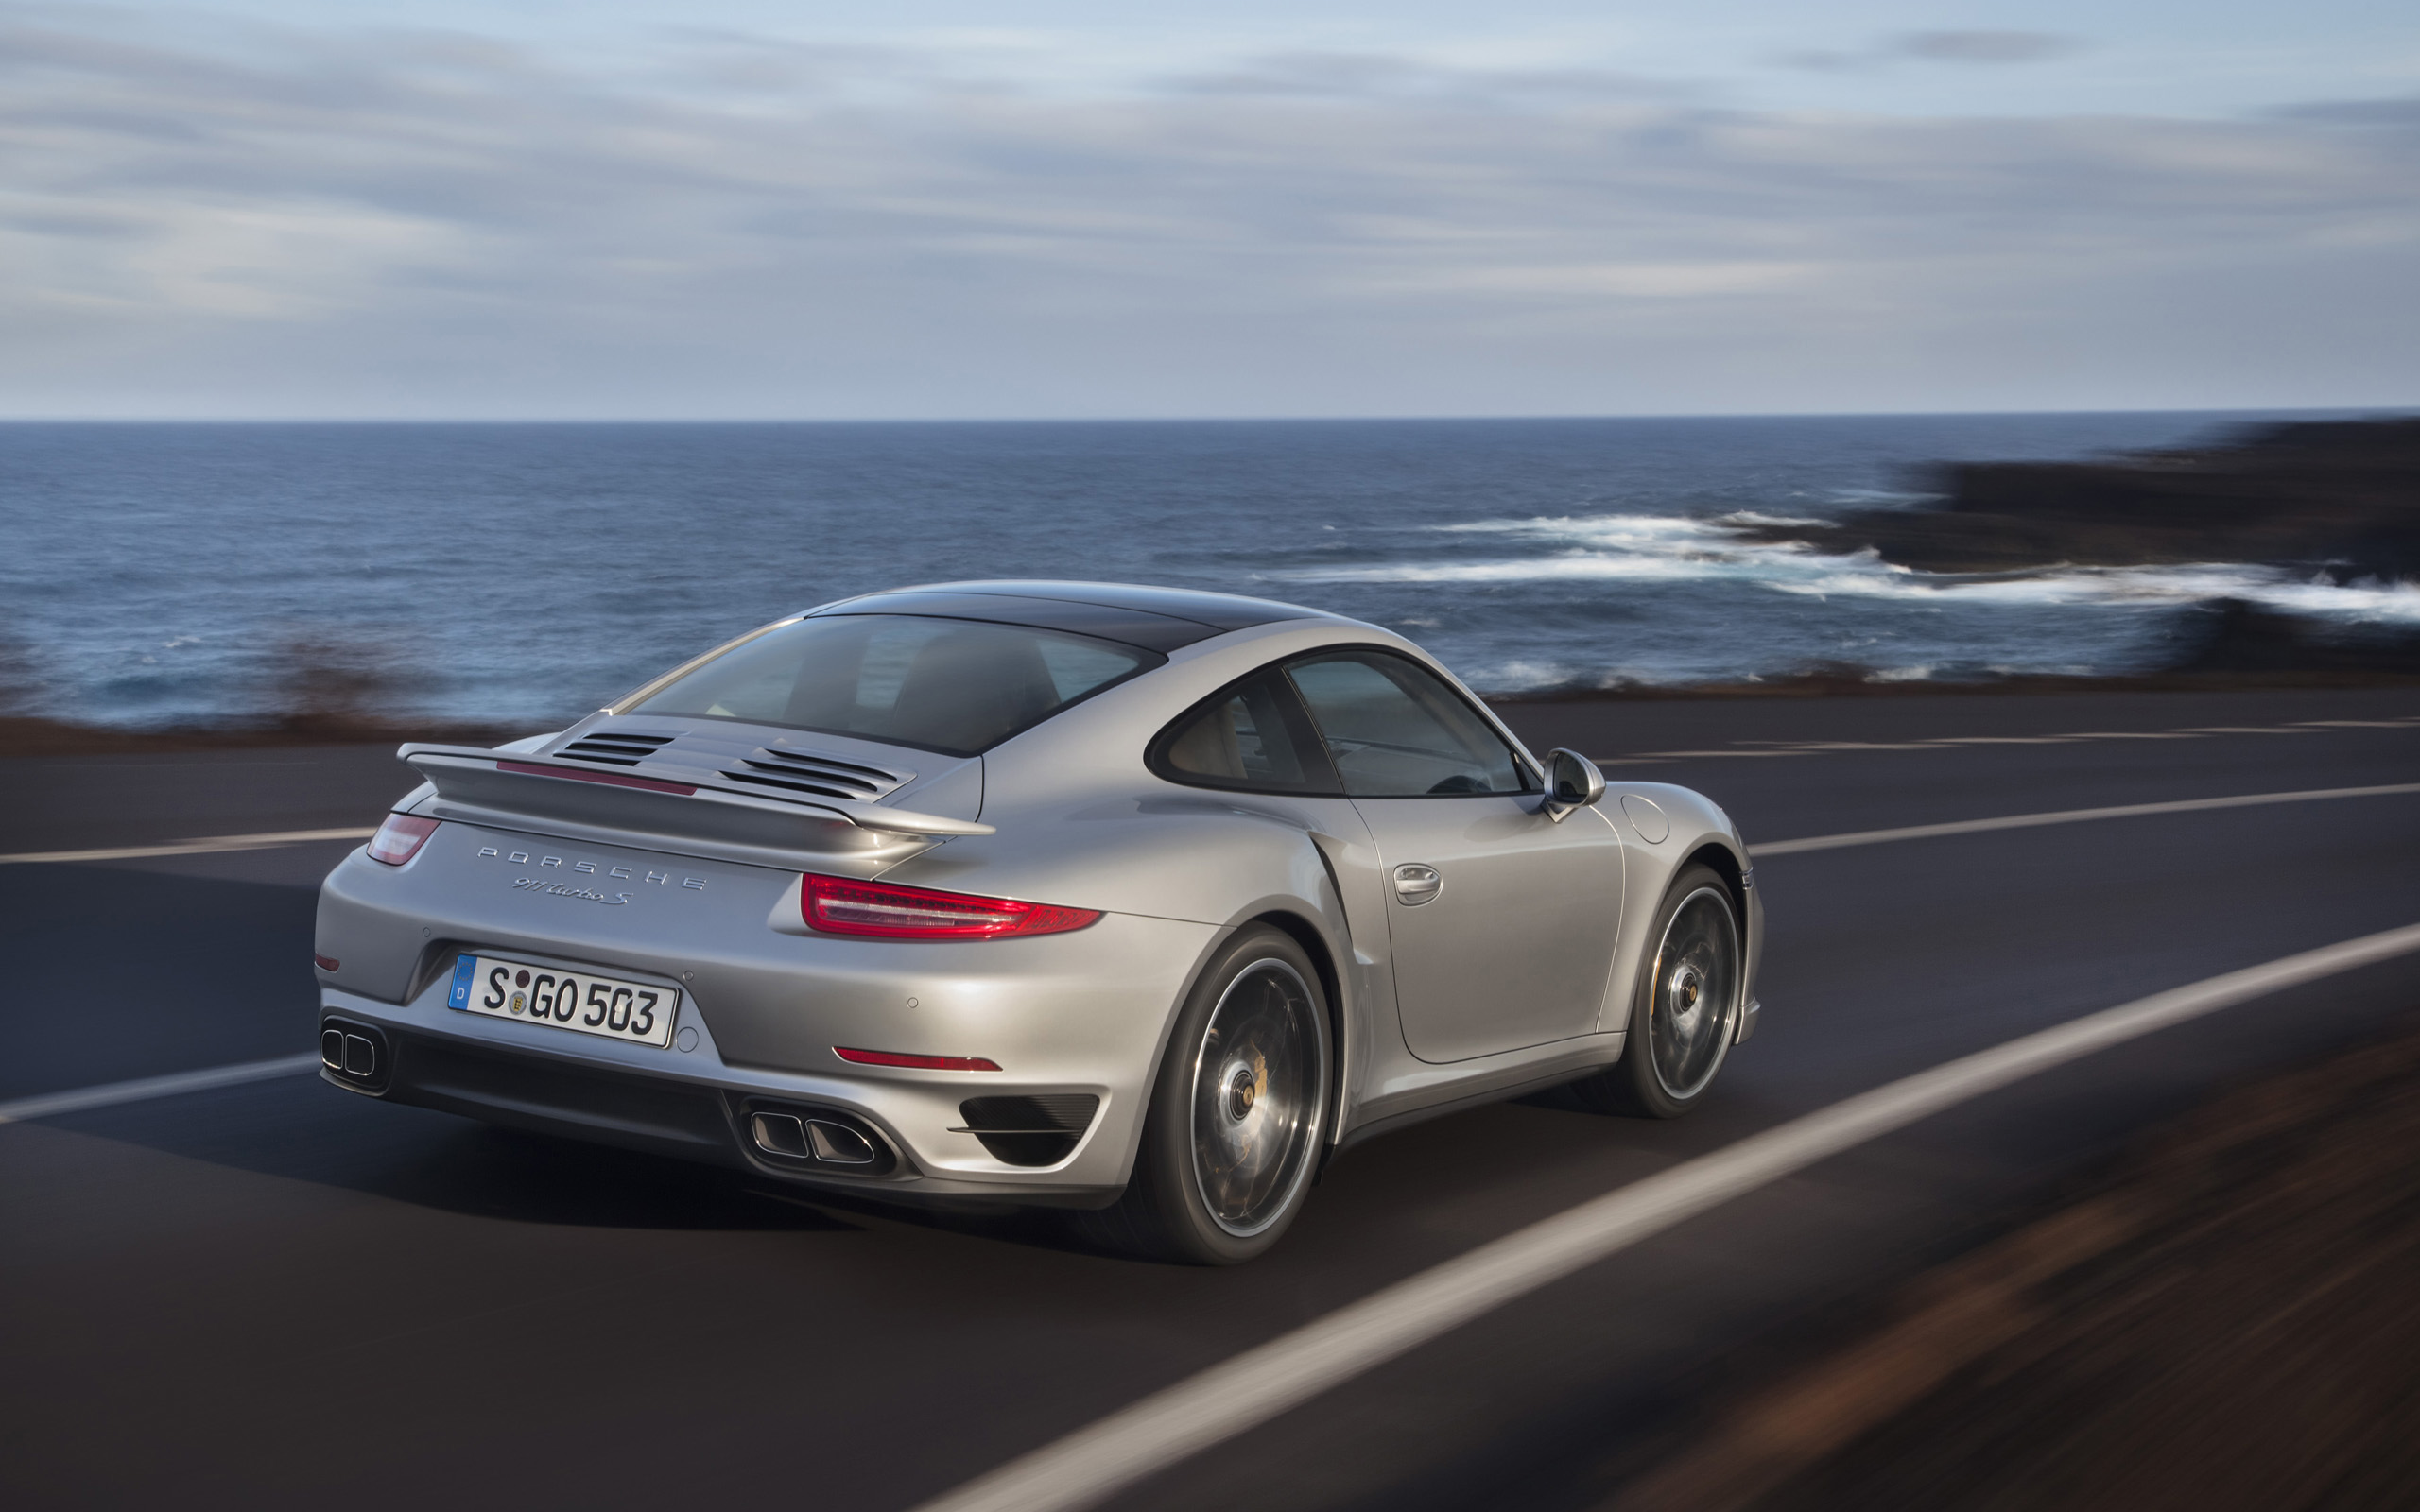 2013 Porsche 911 Turbo Motion Rear wallpapers | 2013 ...